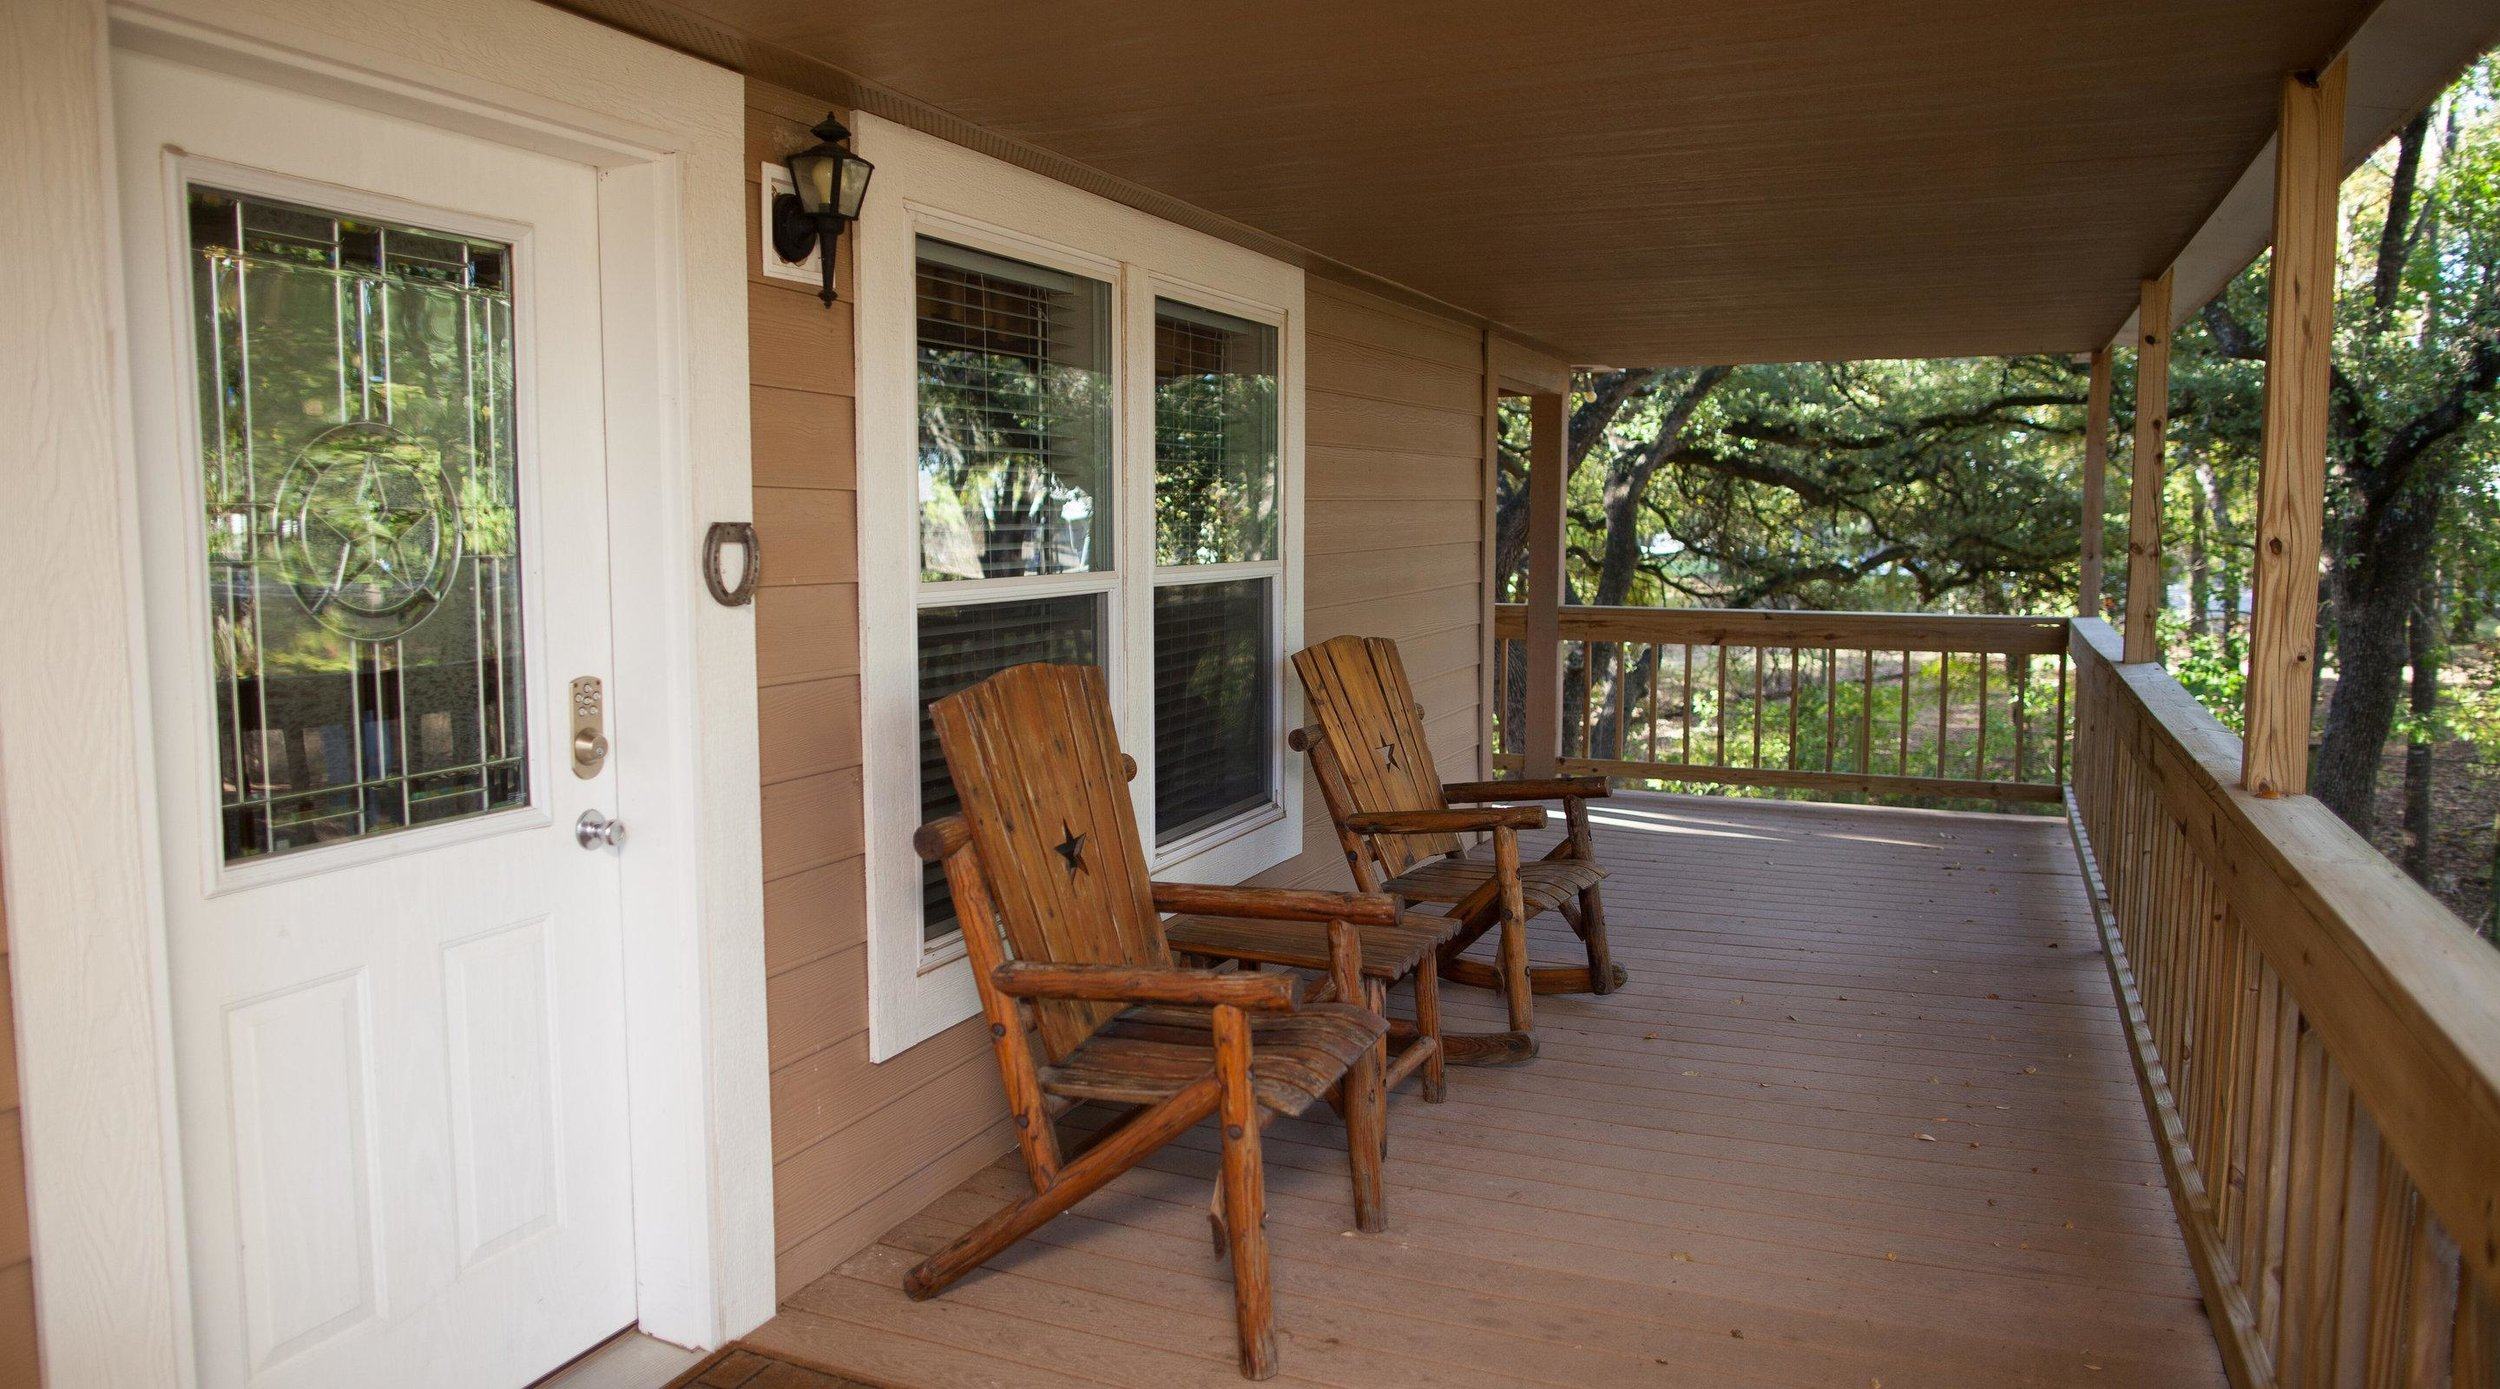 Ranch House - Entire house · 4 bedsRanch House is a western style house with 4 bedrooms, 4 baths, a living room, and a kitchen/dining area. The large wrap-around porch overlooks acres of the old Ostrich Farm.[Accommodates 4-8 people]